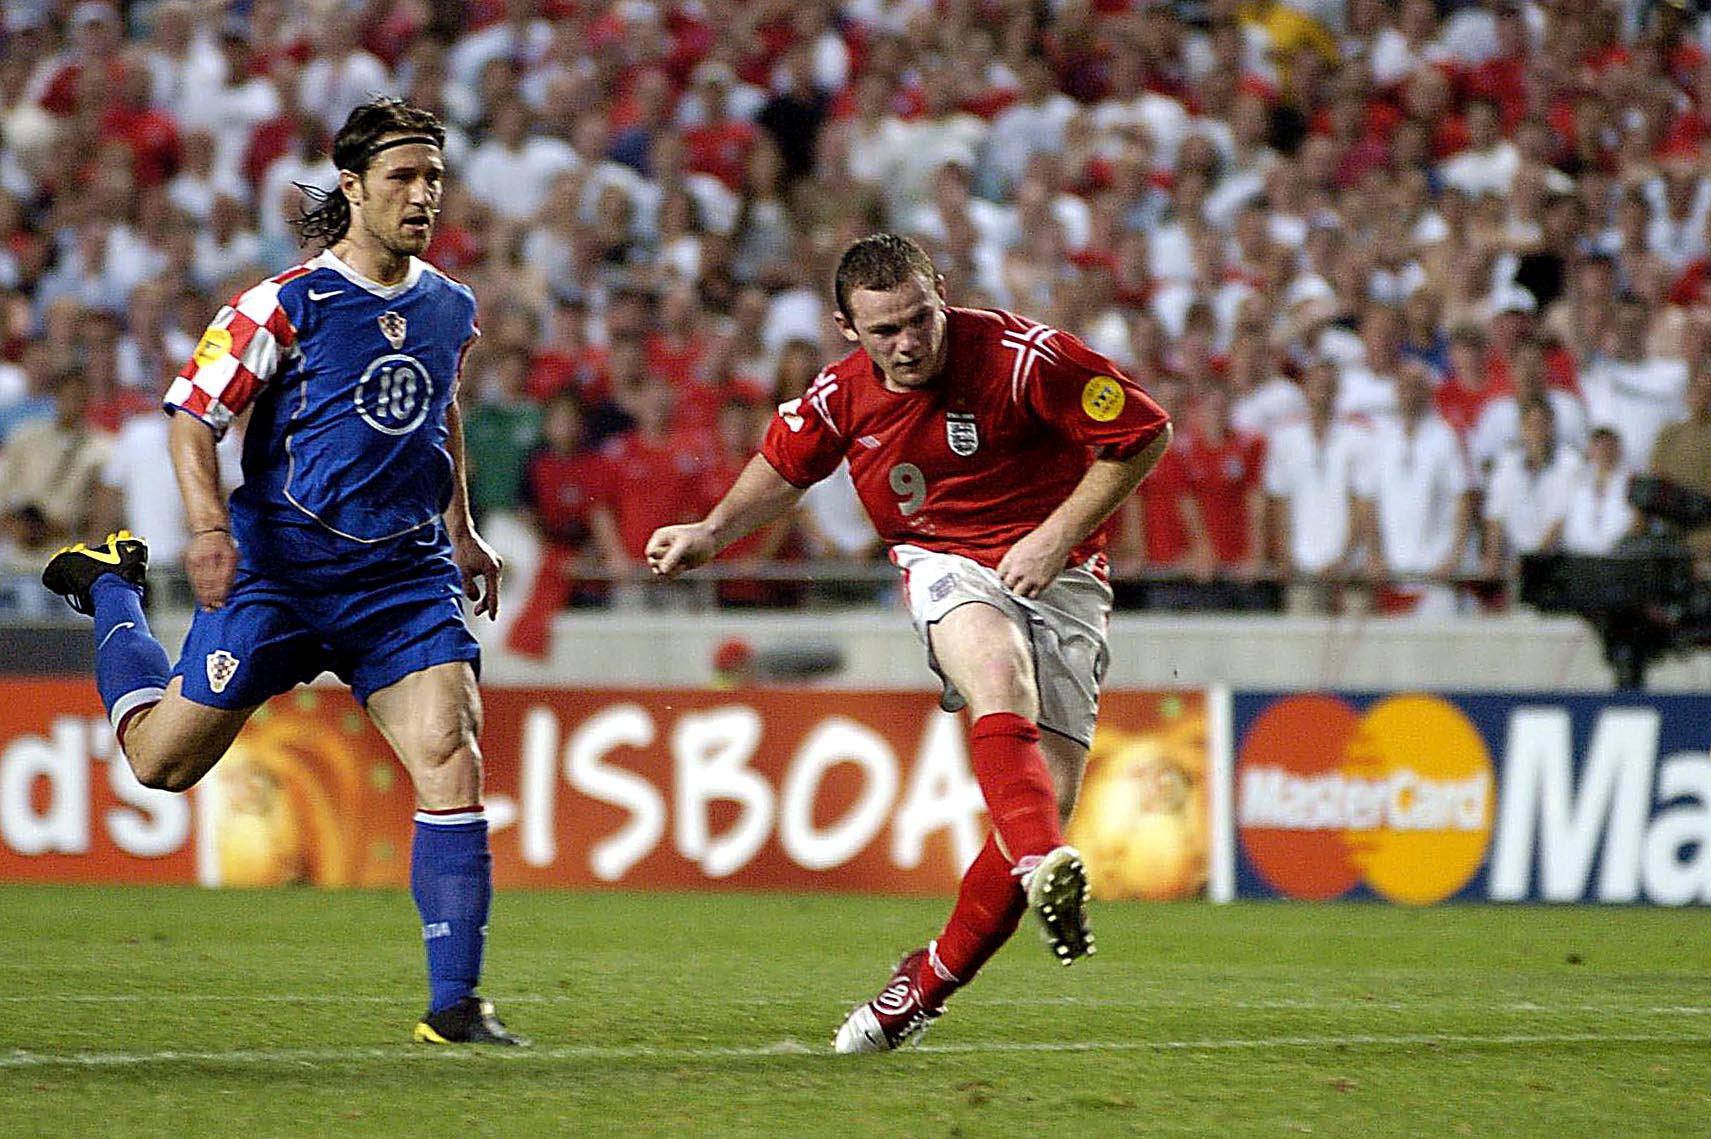 Rooney scored 4 times at Euro 2004 and got the nation purring